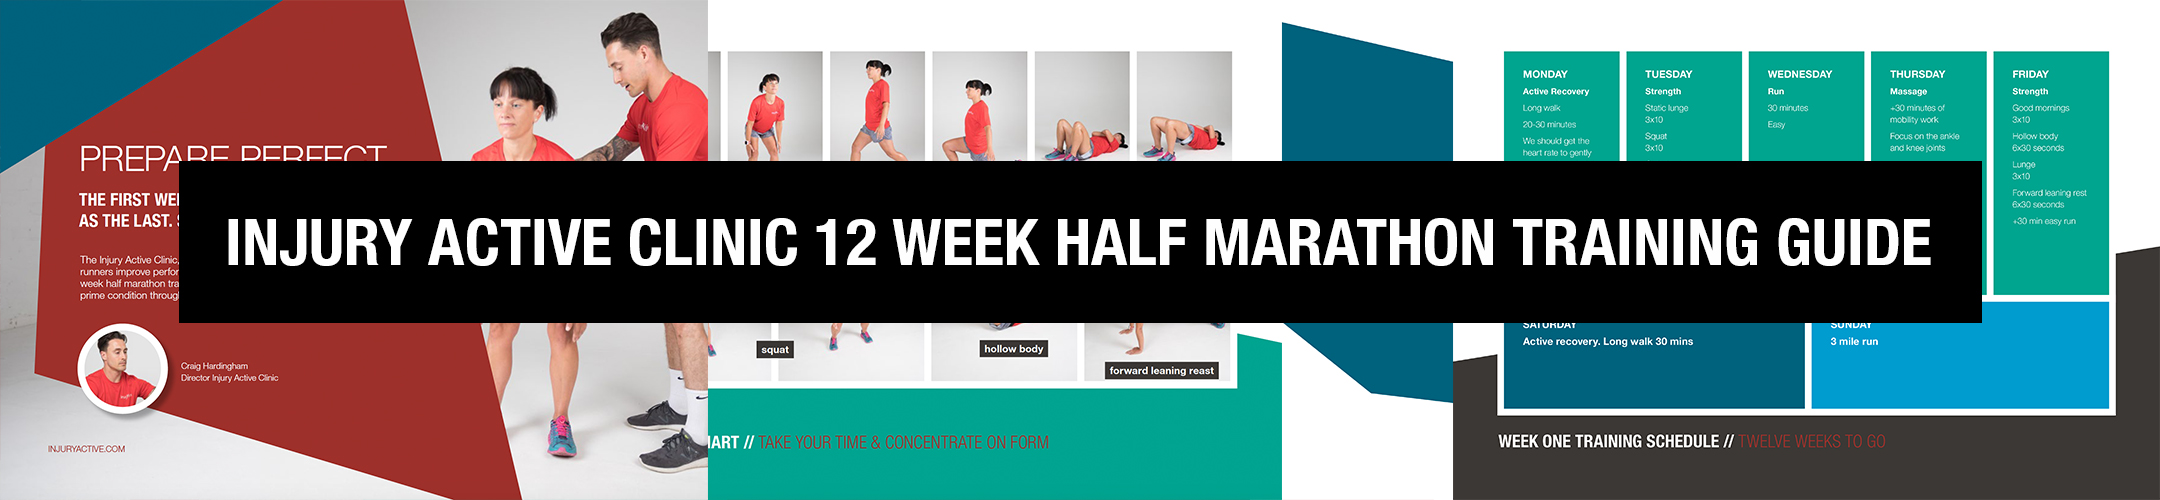 FREE 12 WEEK HALF MARATHON TRAINING GUIDE FROM INJURYACTIVE.CO.UK